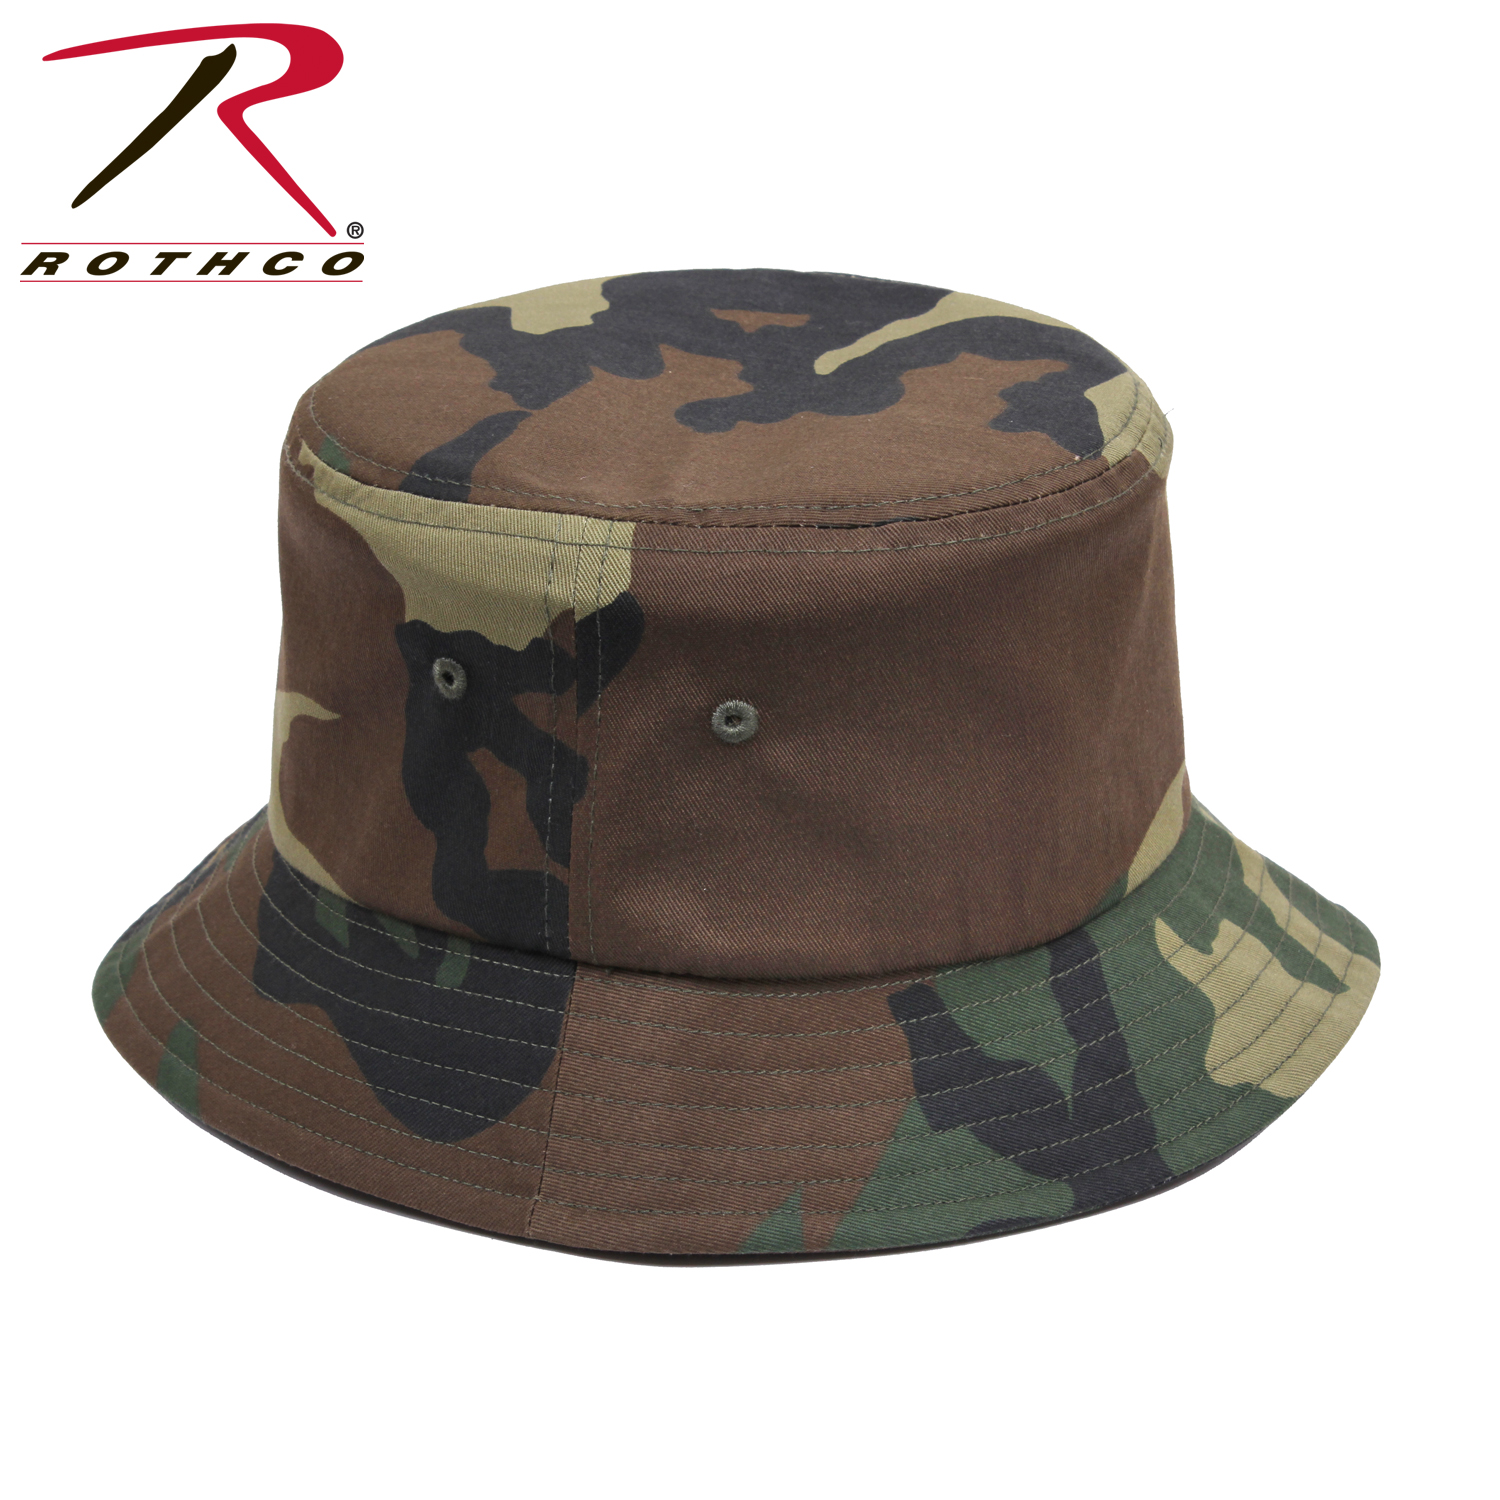 8f420f1826132 Rothco Bucket Hat